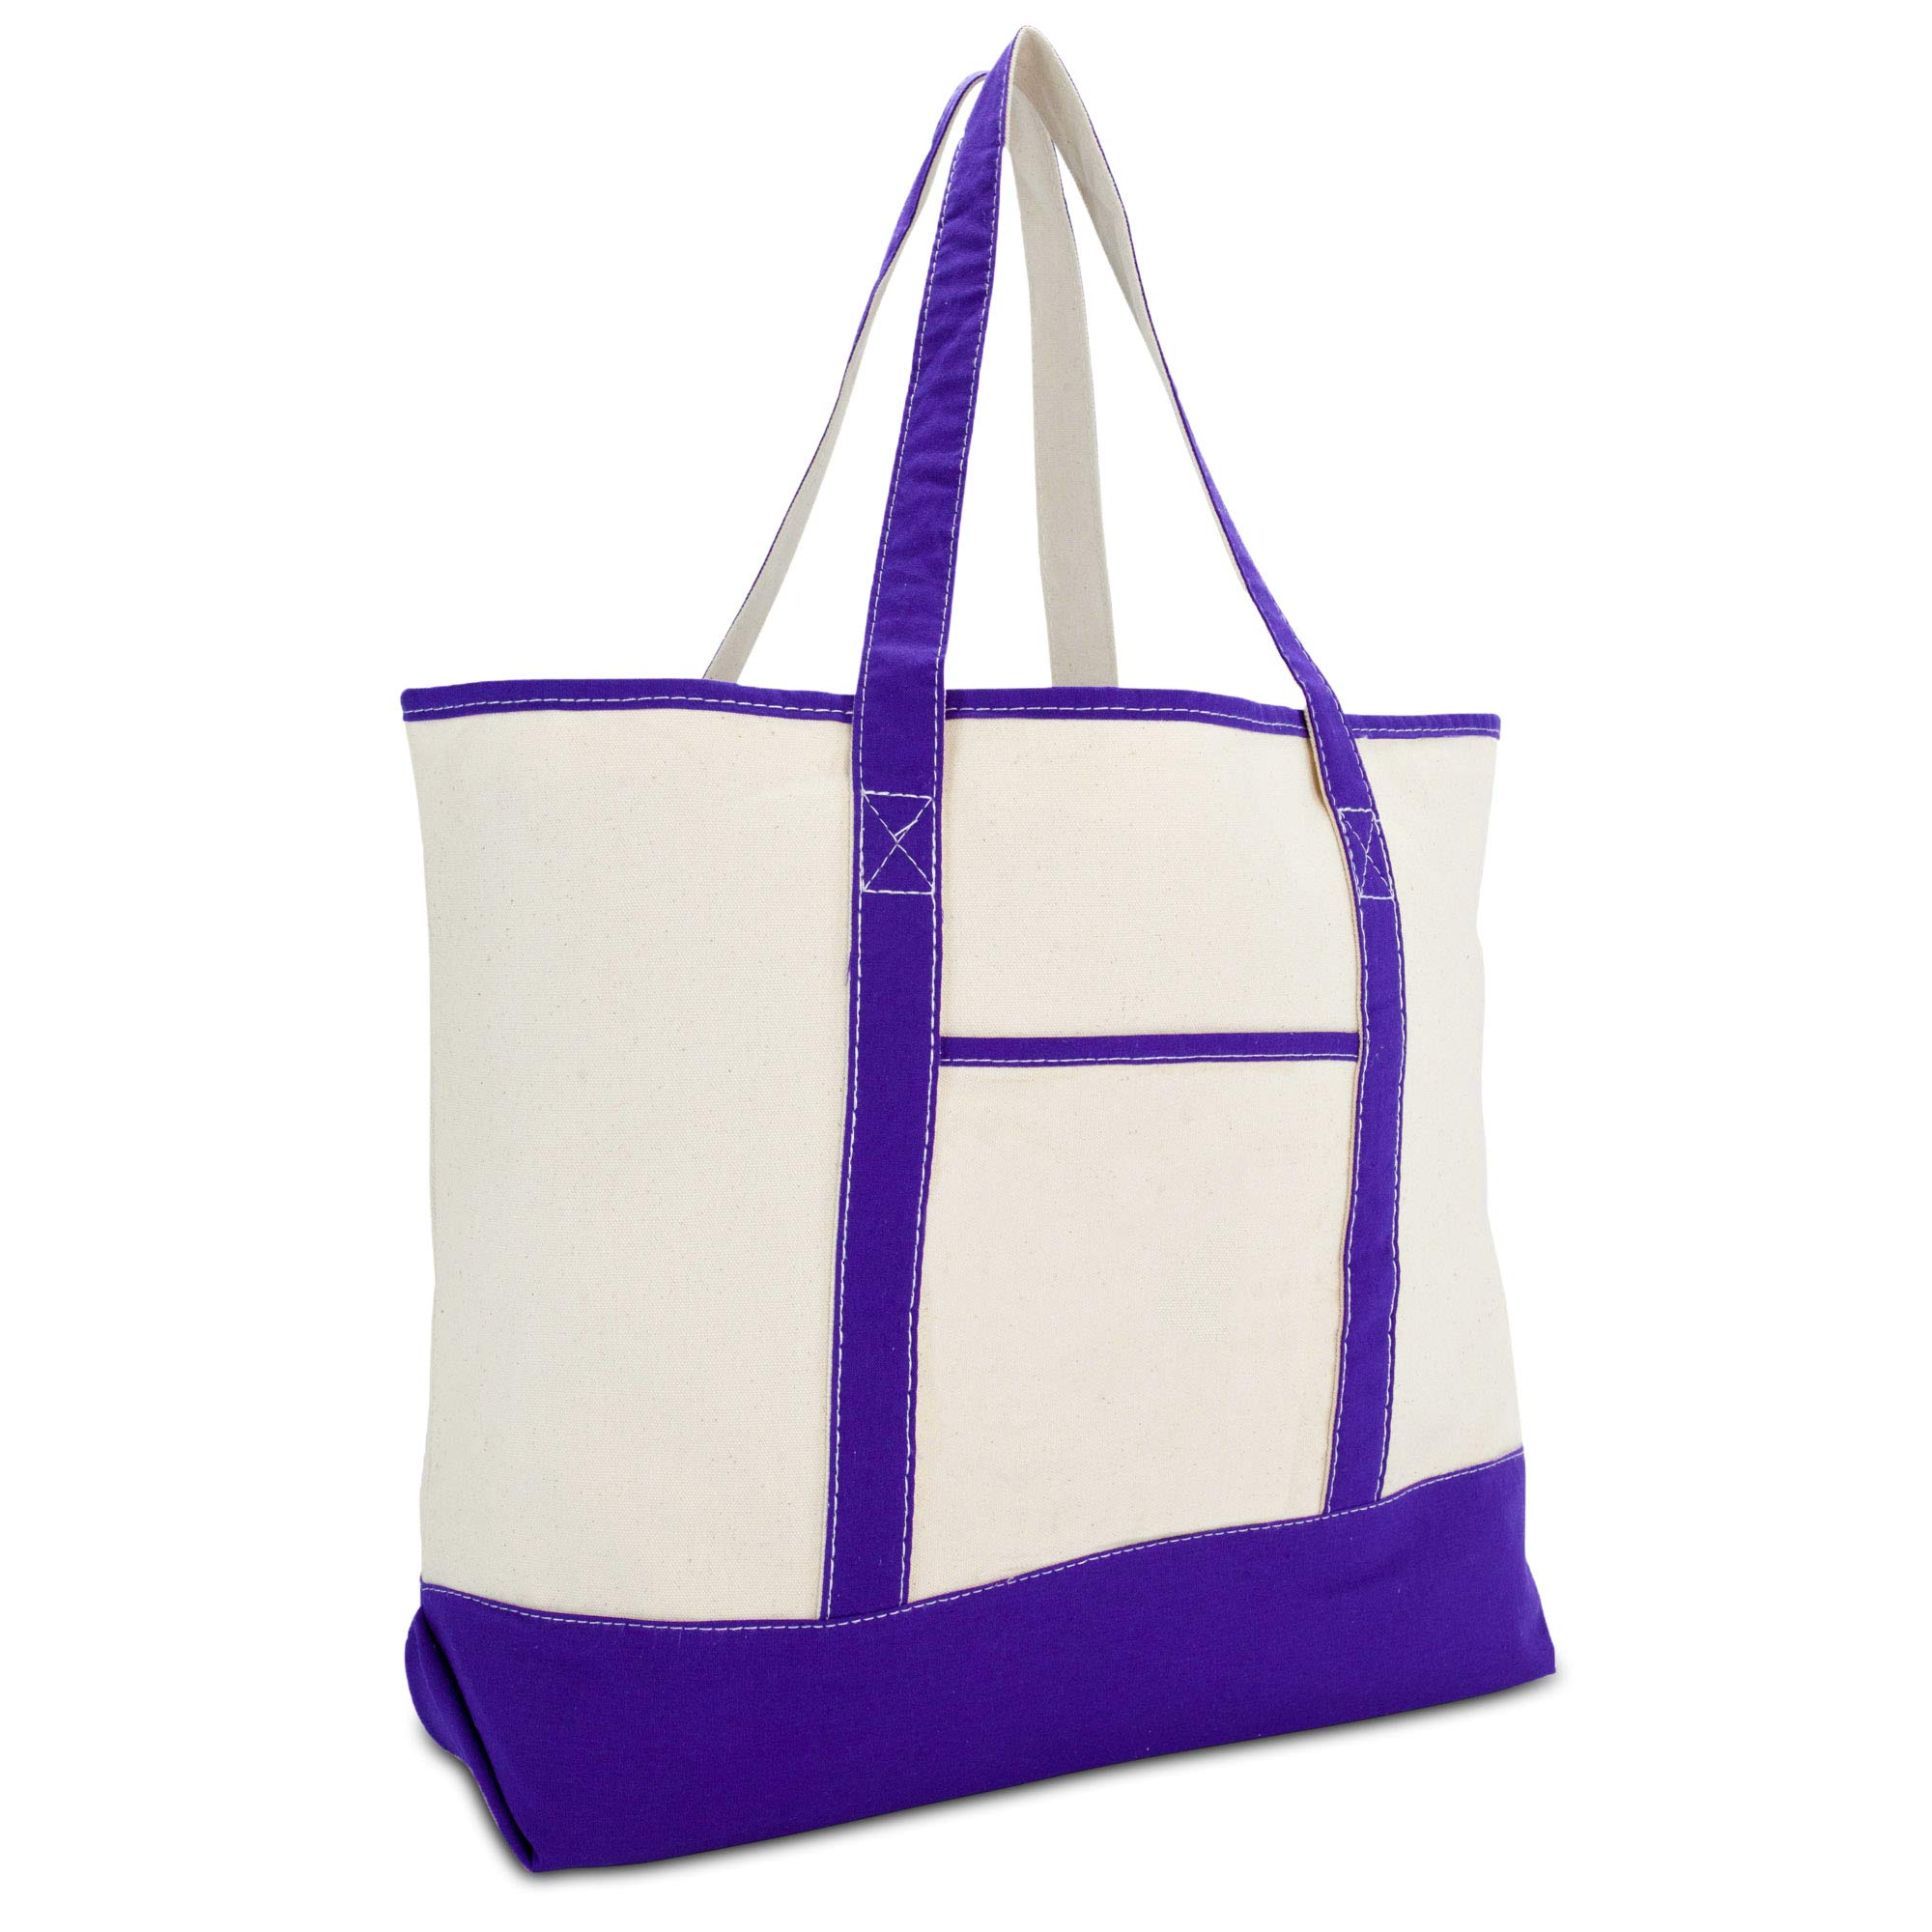 DALIX 22'' Extra Large Shopping Tote Bag w Outer Pocket in Purple and Natural